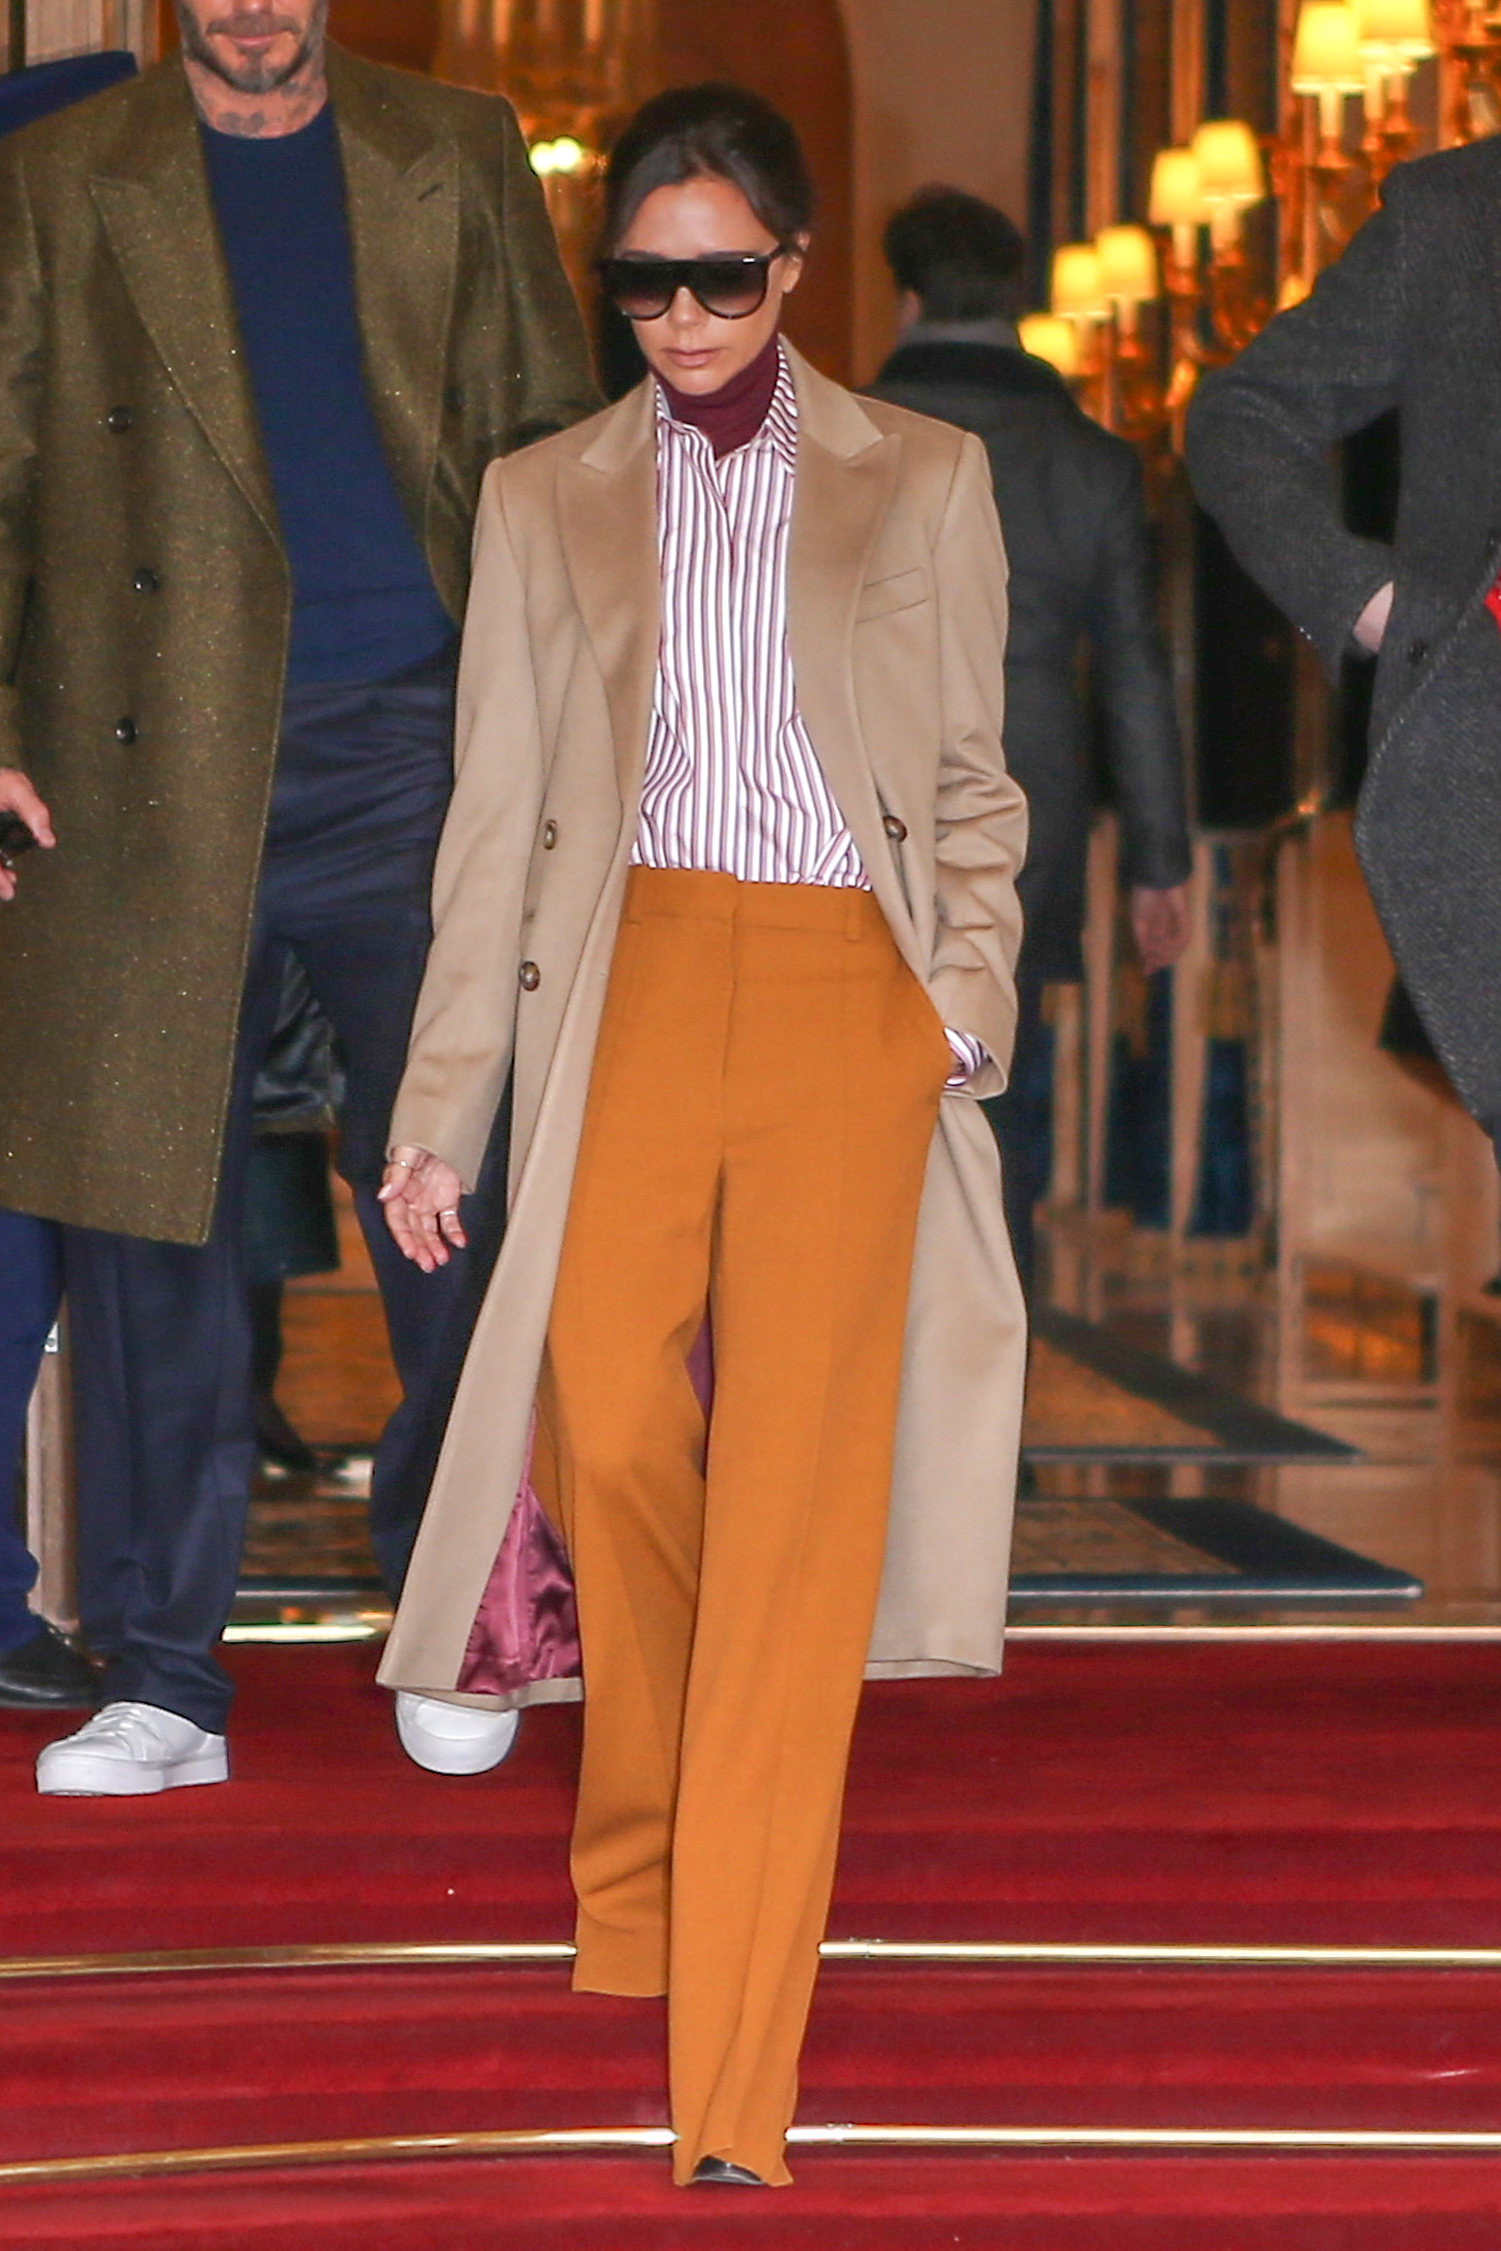 David Beckham, Victoria Beckham and Brooklyn Beckham are seen leaving the Ritz Hotel in Paris, FRANCE on January 18, 2018 <P> Pictured: David Beckham, Victoria Beckham and Brooklyn Beckham <B>Ref: SPL1647530  180118  </B><BR/> Picture by: Splash News<BR/> </P><P> <B>Splash News and Pictures</B><BR/> Los Angeles:310-821-2666<BR/> New York:212-619-2666<BR/> London:870-934-2666<BR/> <span id=